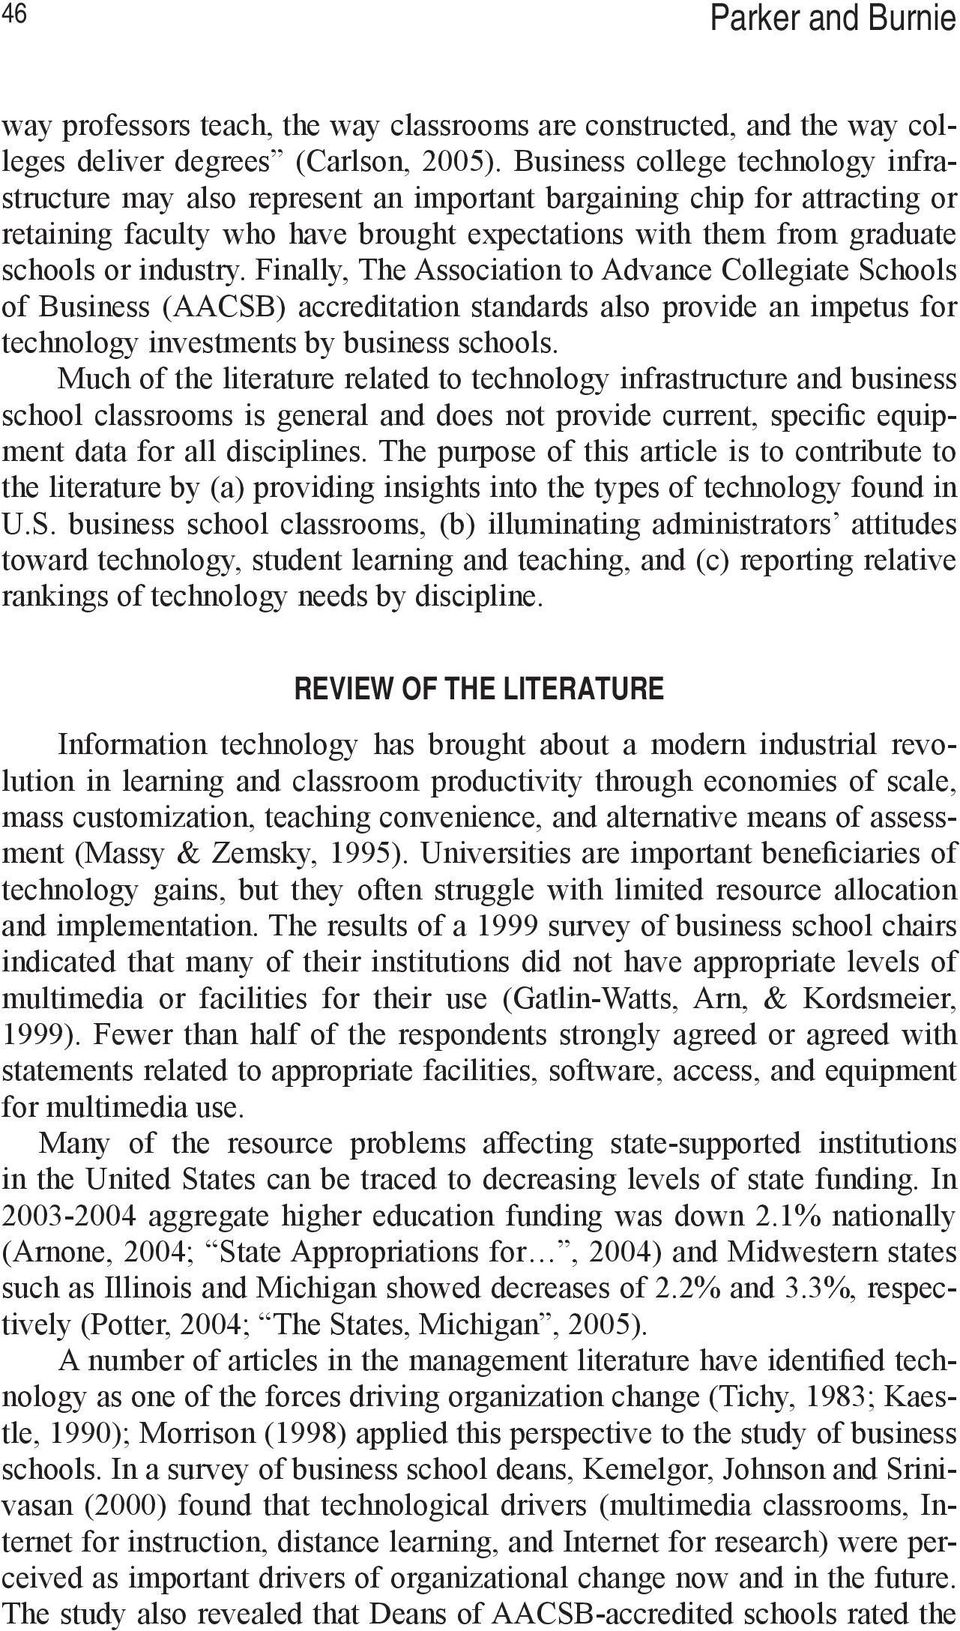 industry. Finally, The Association to Advance Collegiate Schools of Business (AACSB) accreditation standards also provide an impetus for technology investments by business schools.